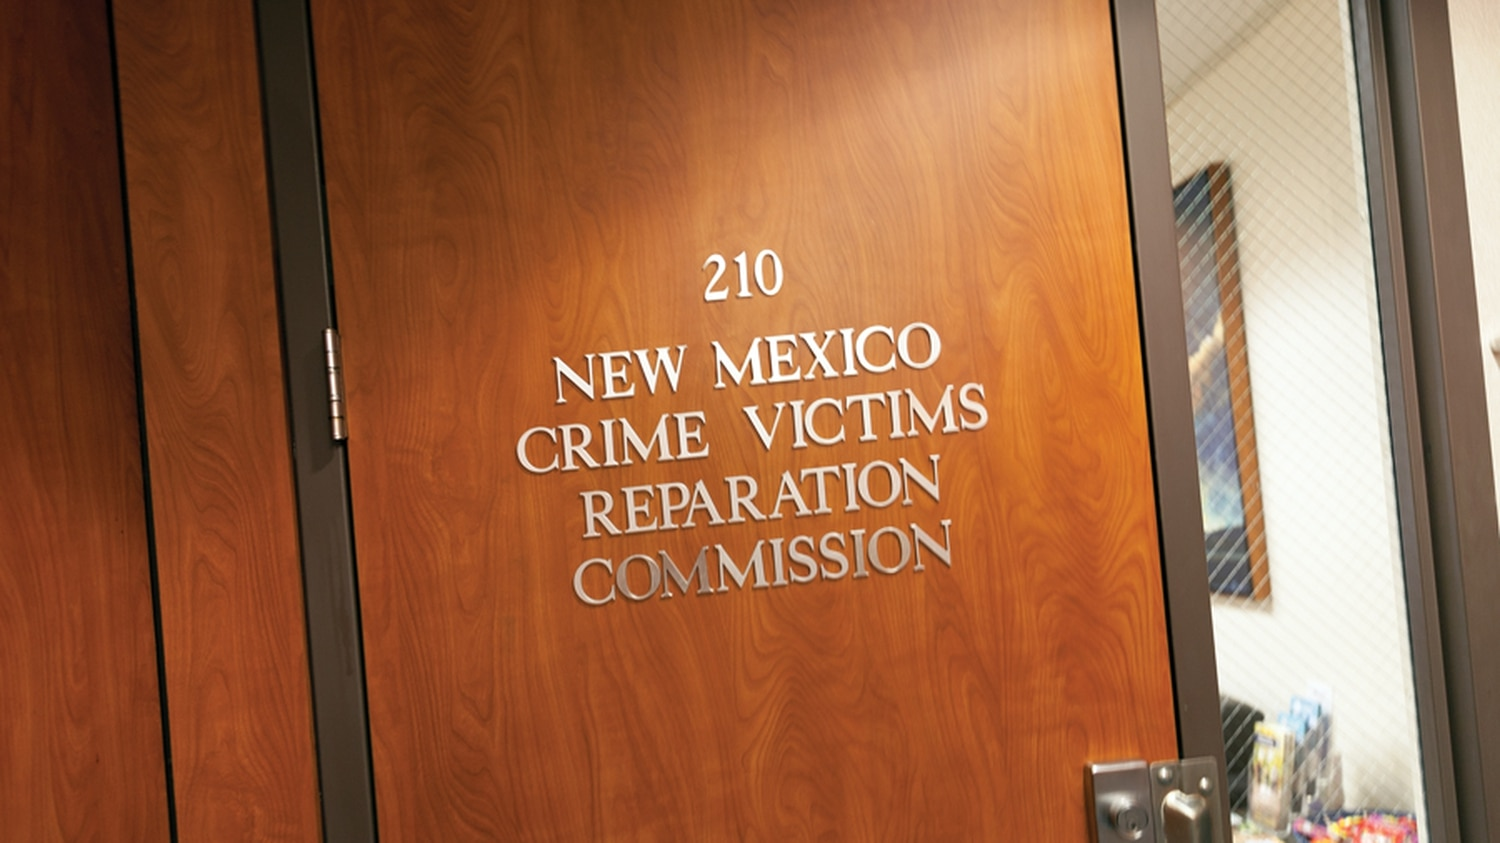 The New Mexico Crime Victims Reparation Commission has seen an increase in applications for reparations over the years but the rate at which applications are approved has decreased.